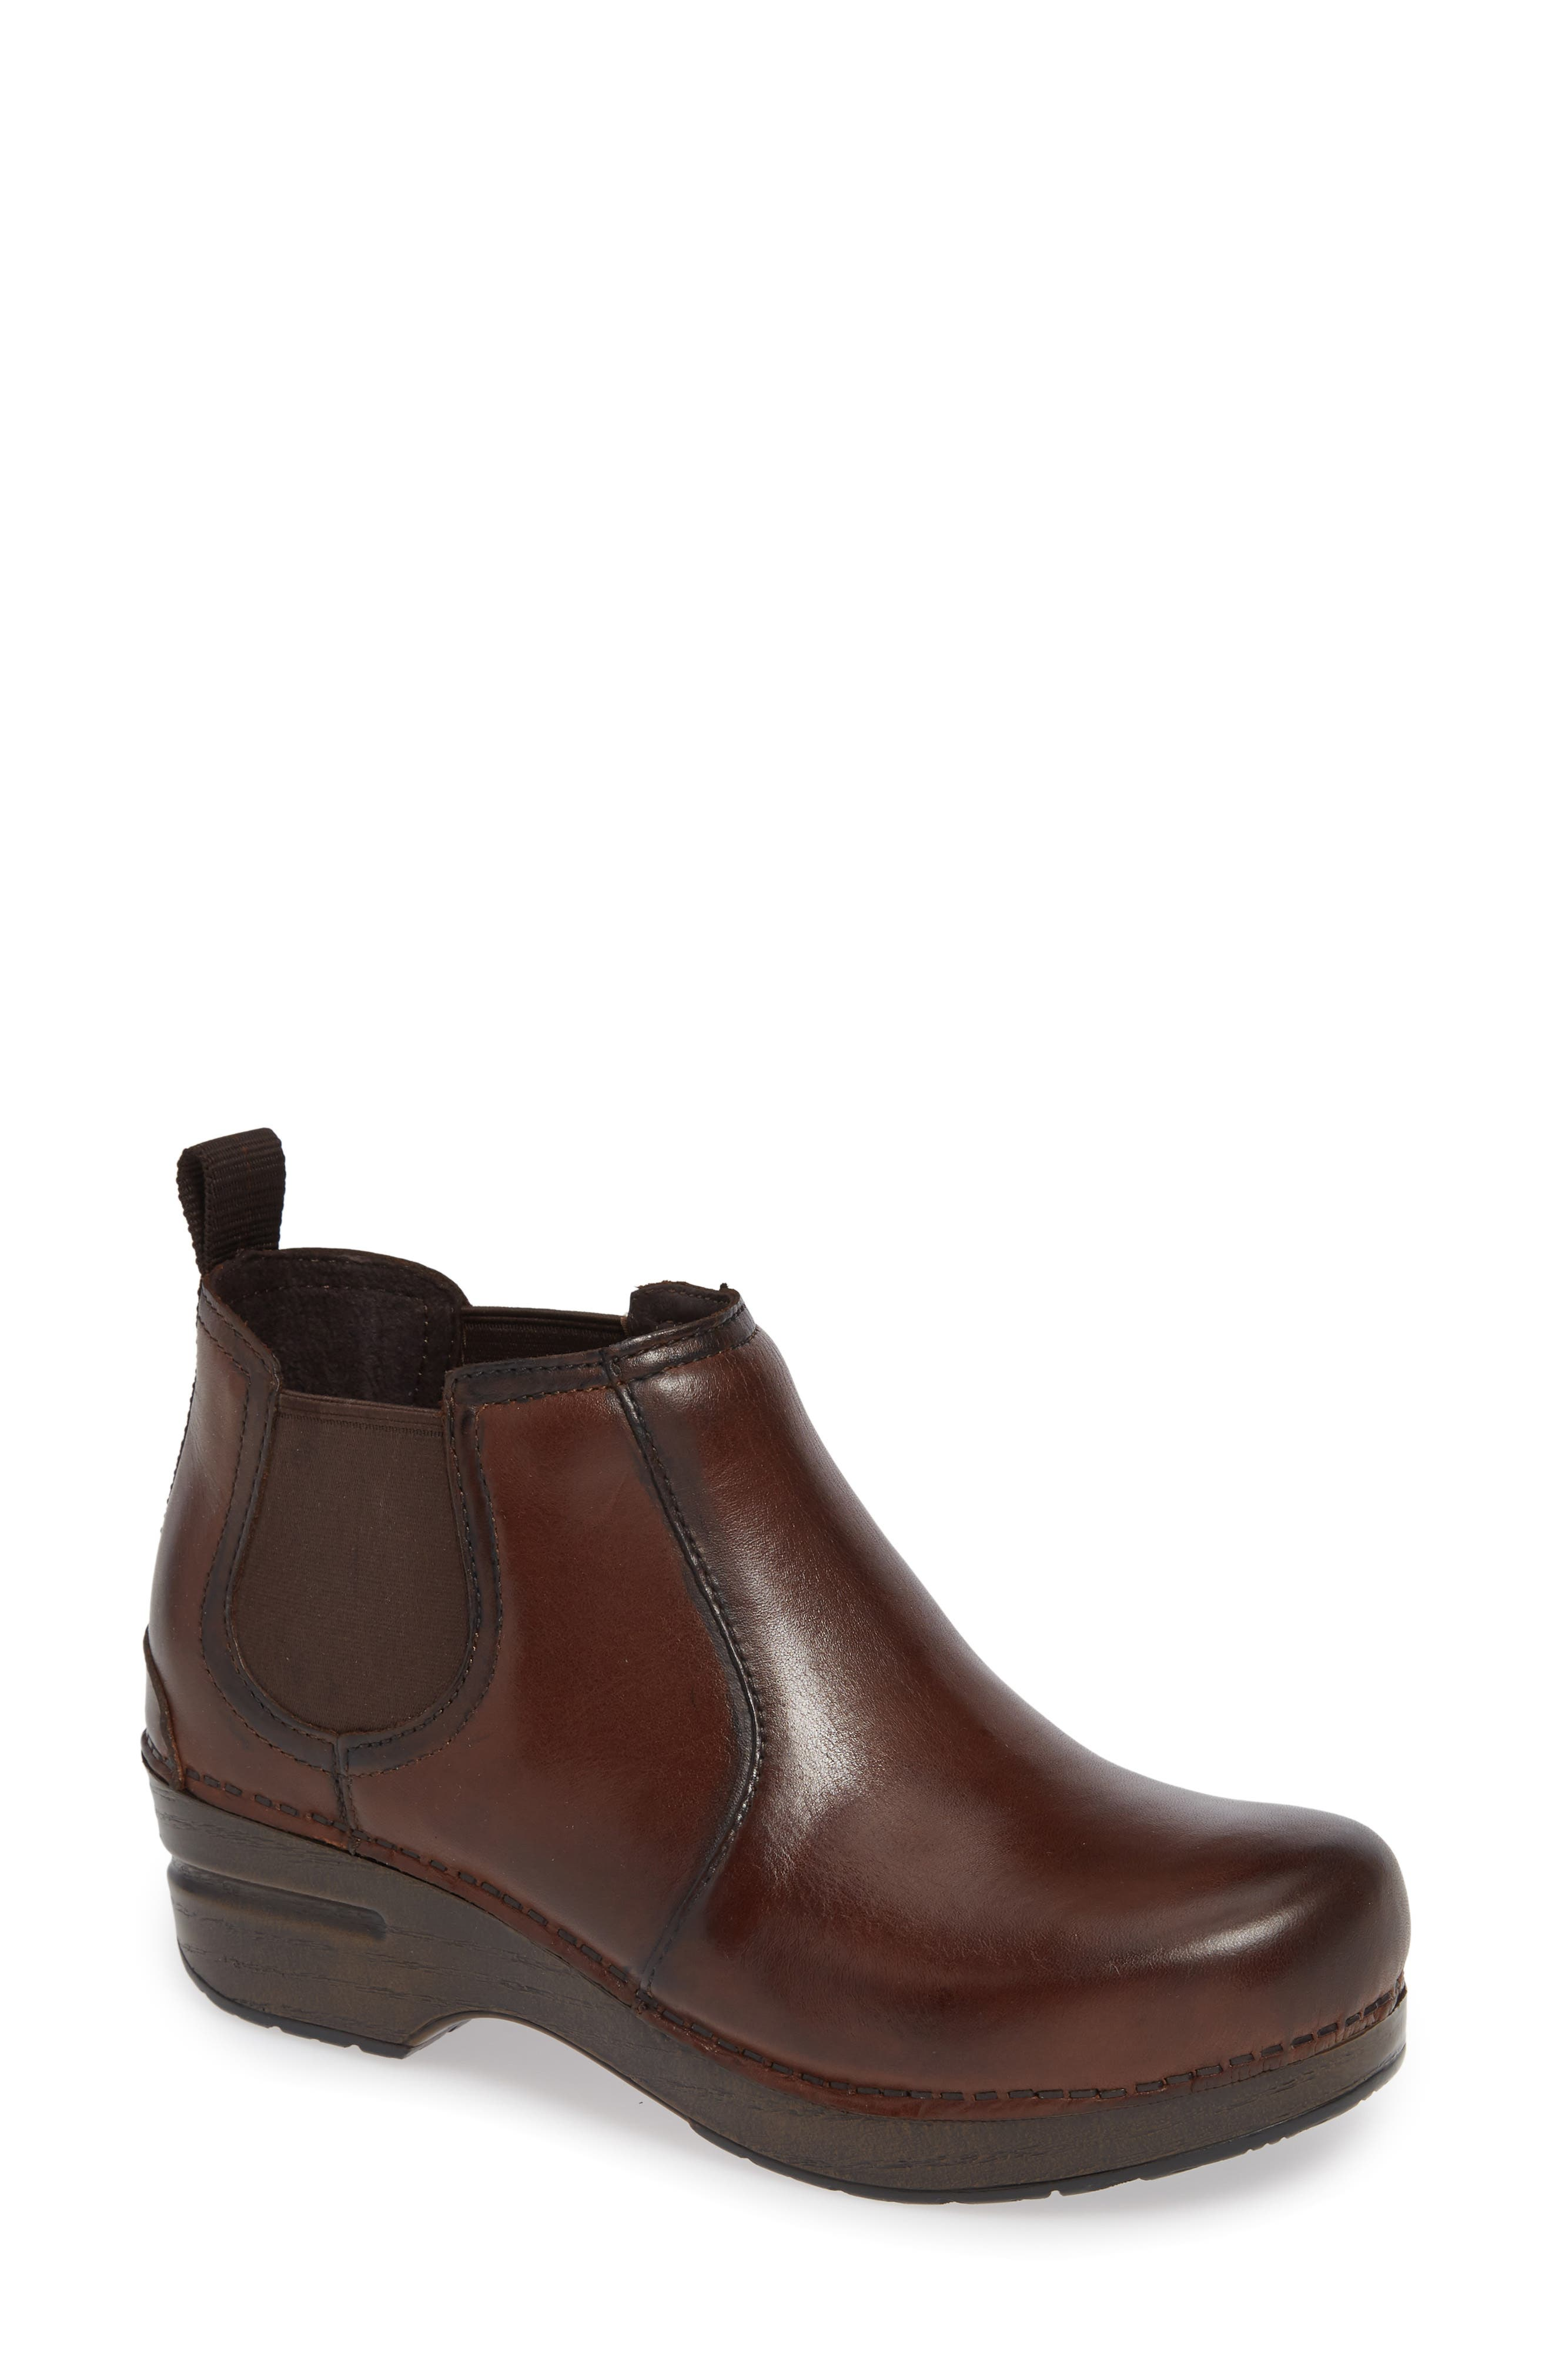 Frankie Bootie,                             Main thumbnail 1, color,                             BROWN LEATHER